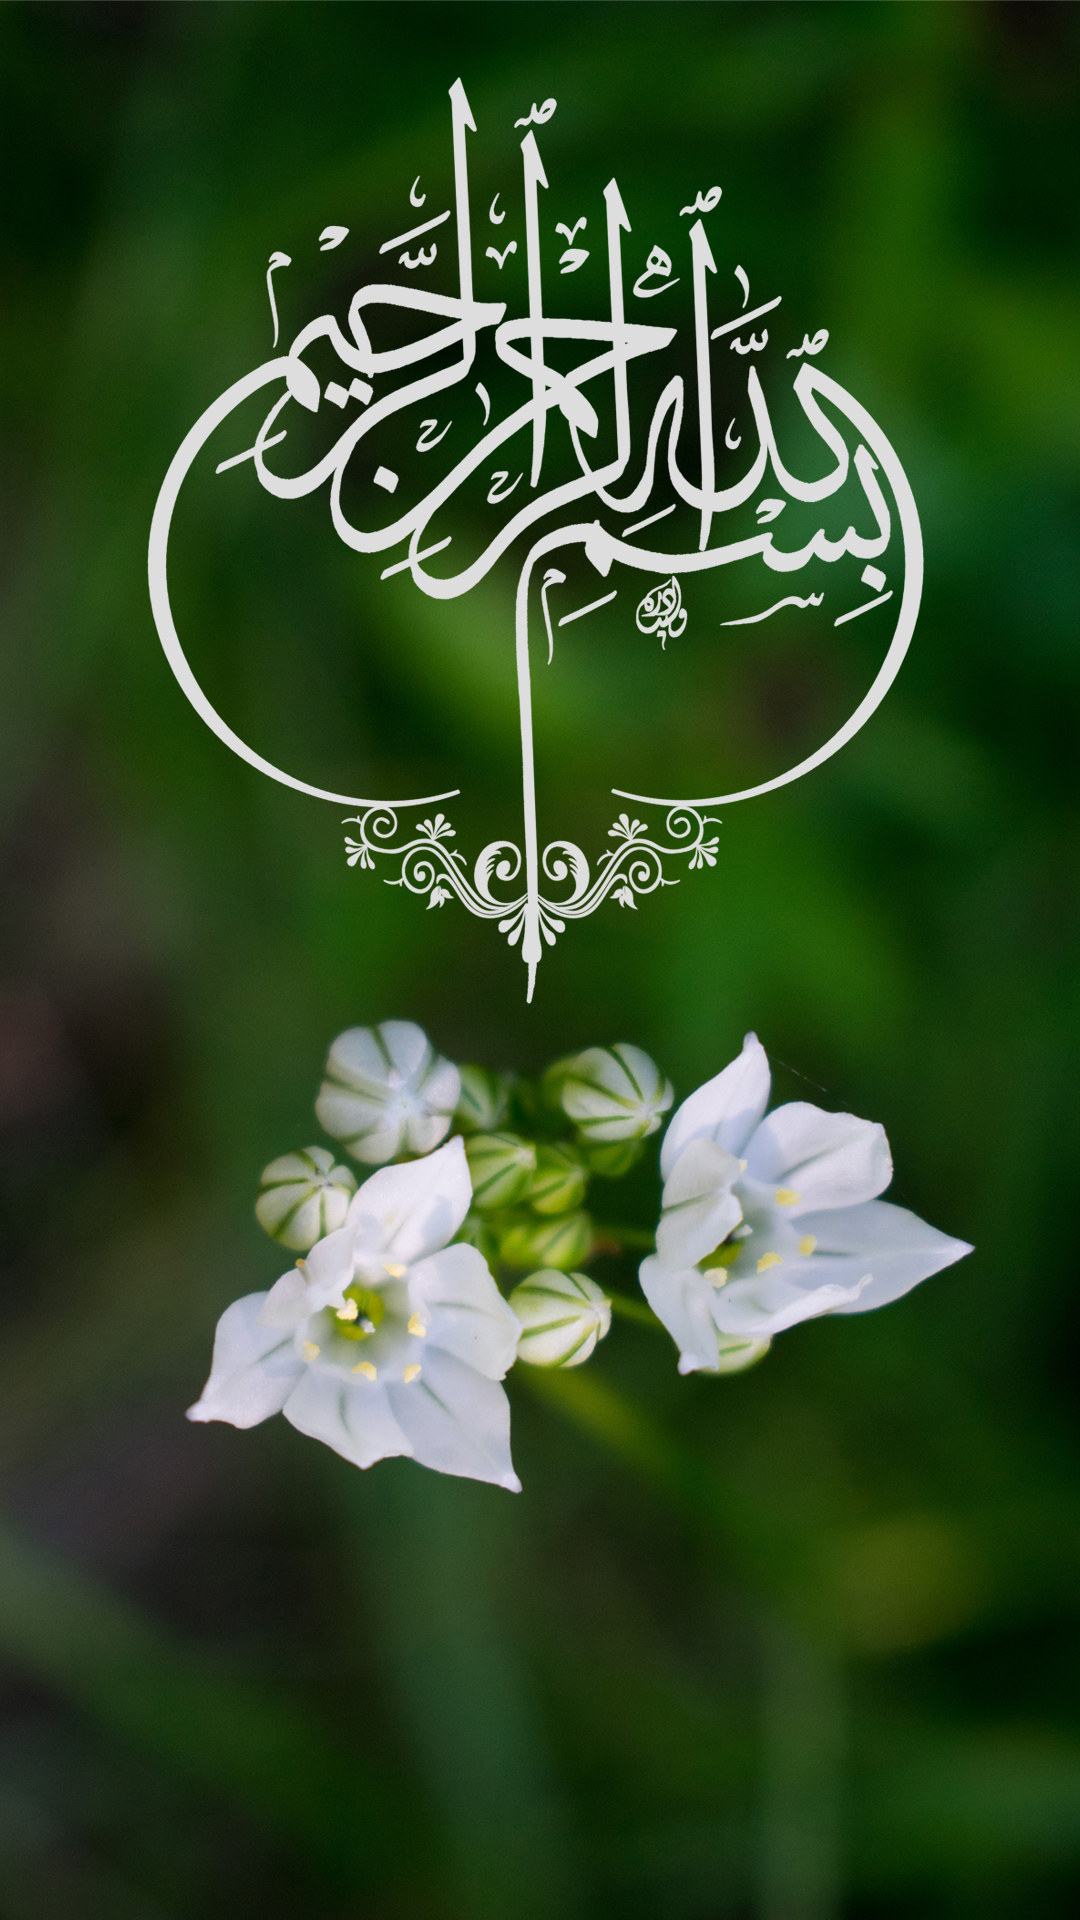 Phone Nature Wallpapers as Islamic Wallpaper for Mobile HD with ...